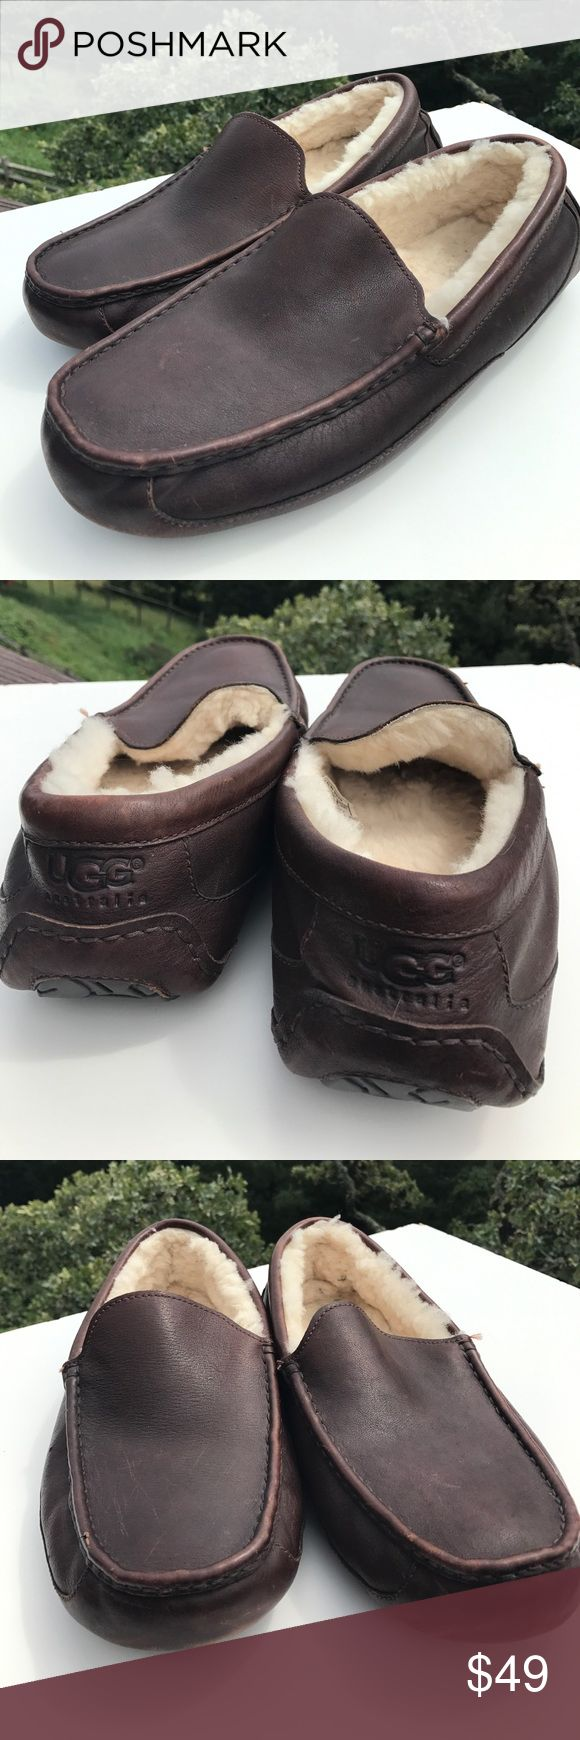 ugg ascot brown leather